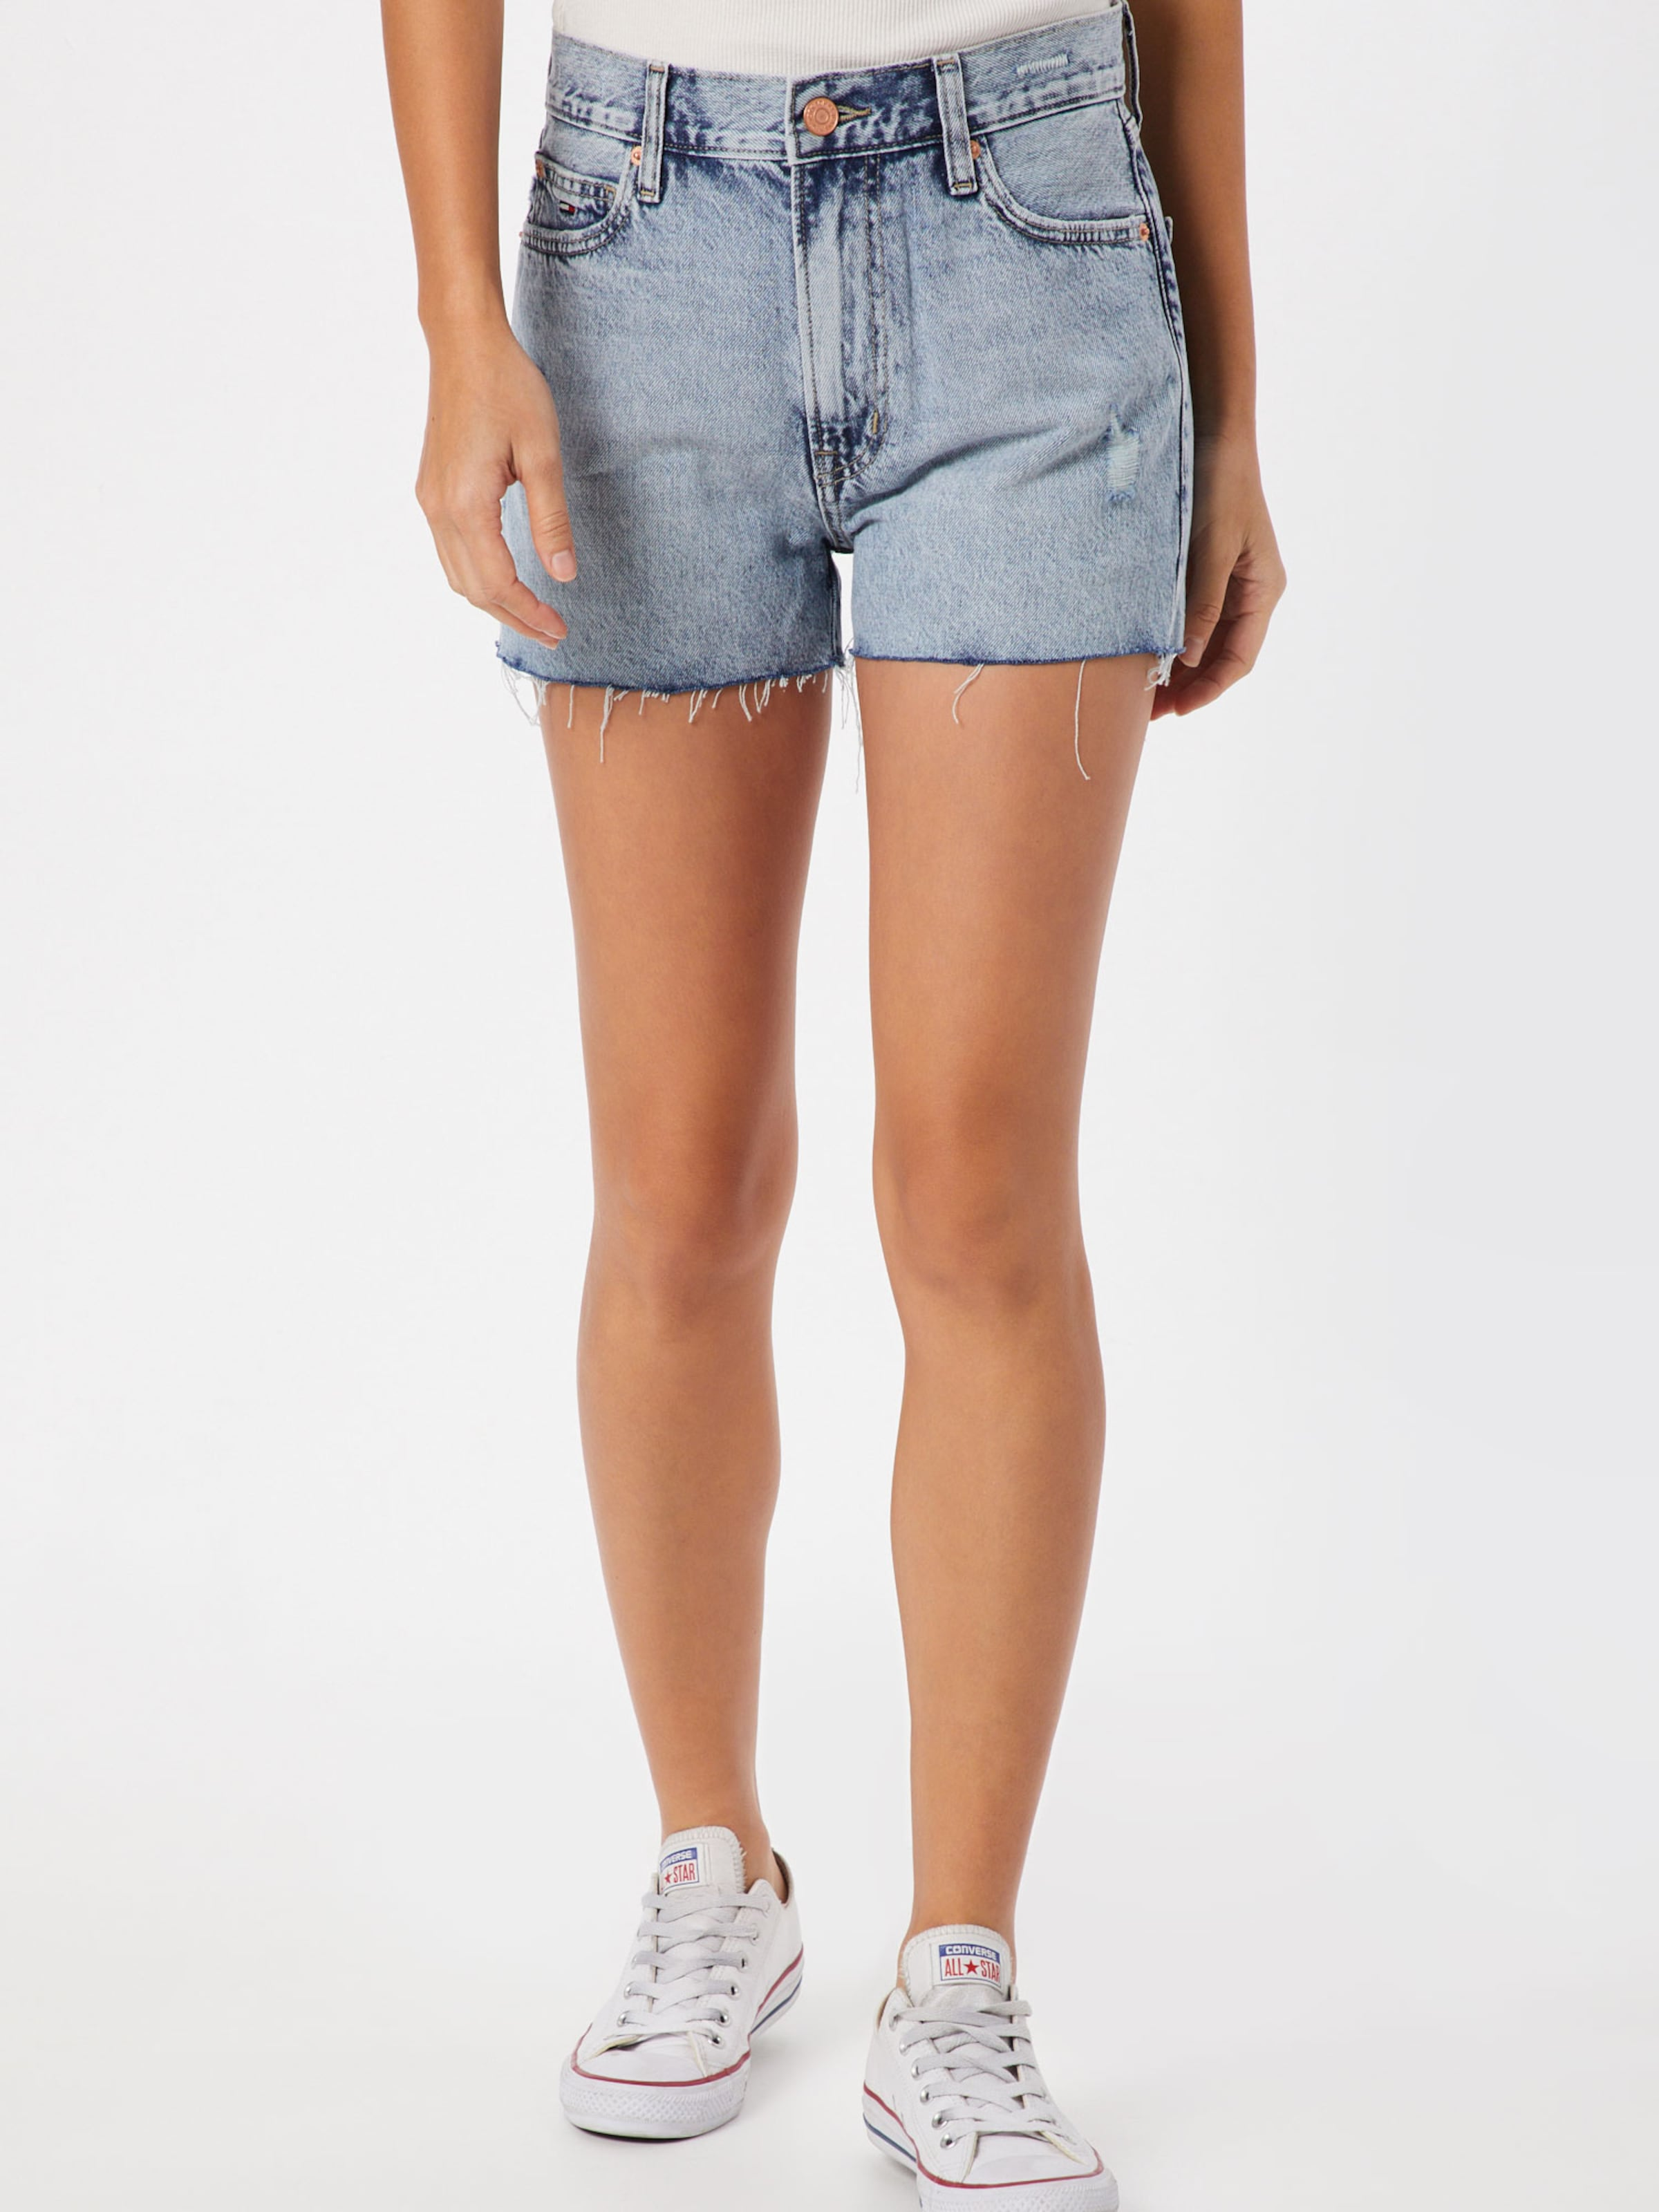 In Blue Shorts Denim Jeans Tommy 9YEDHeWI2